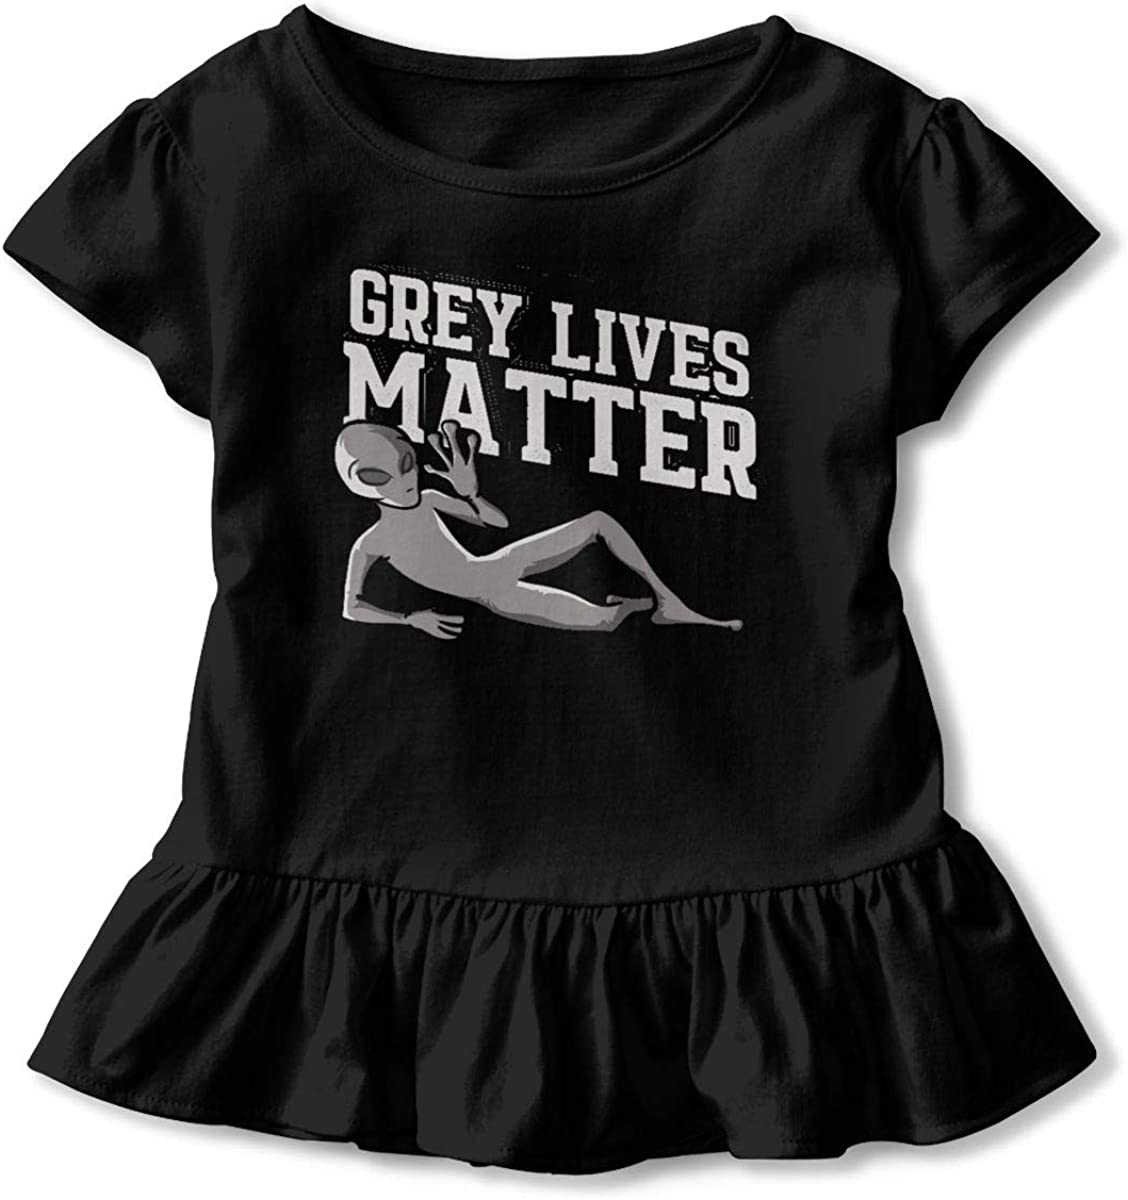 Grey Lives Matter Alien Shirt Baby Girls Ruffles Cotton Summer Clothes for 2-6 Years Old Baby